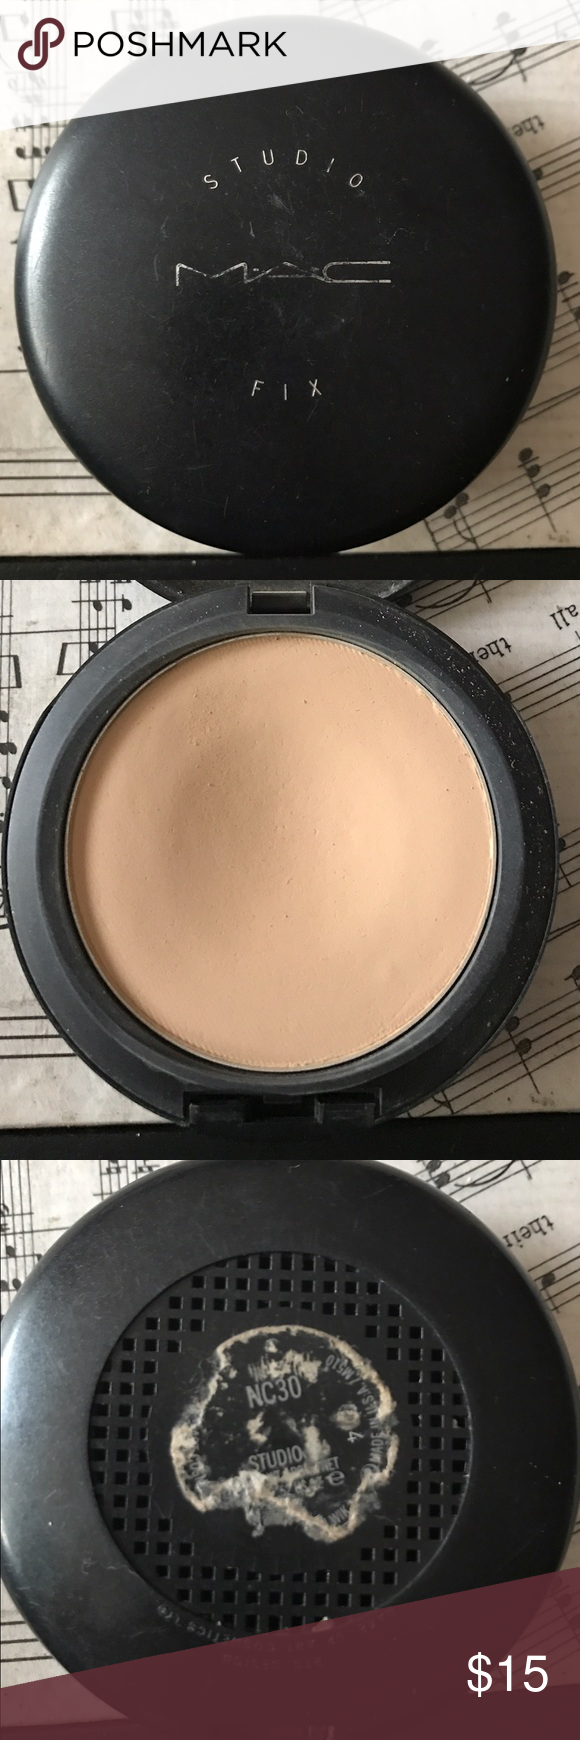 Mac Studio Fix Powder Foundation Color Chart Colour Guide Mac Studio